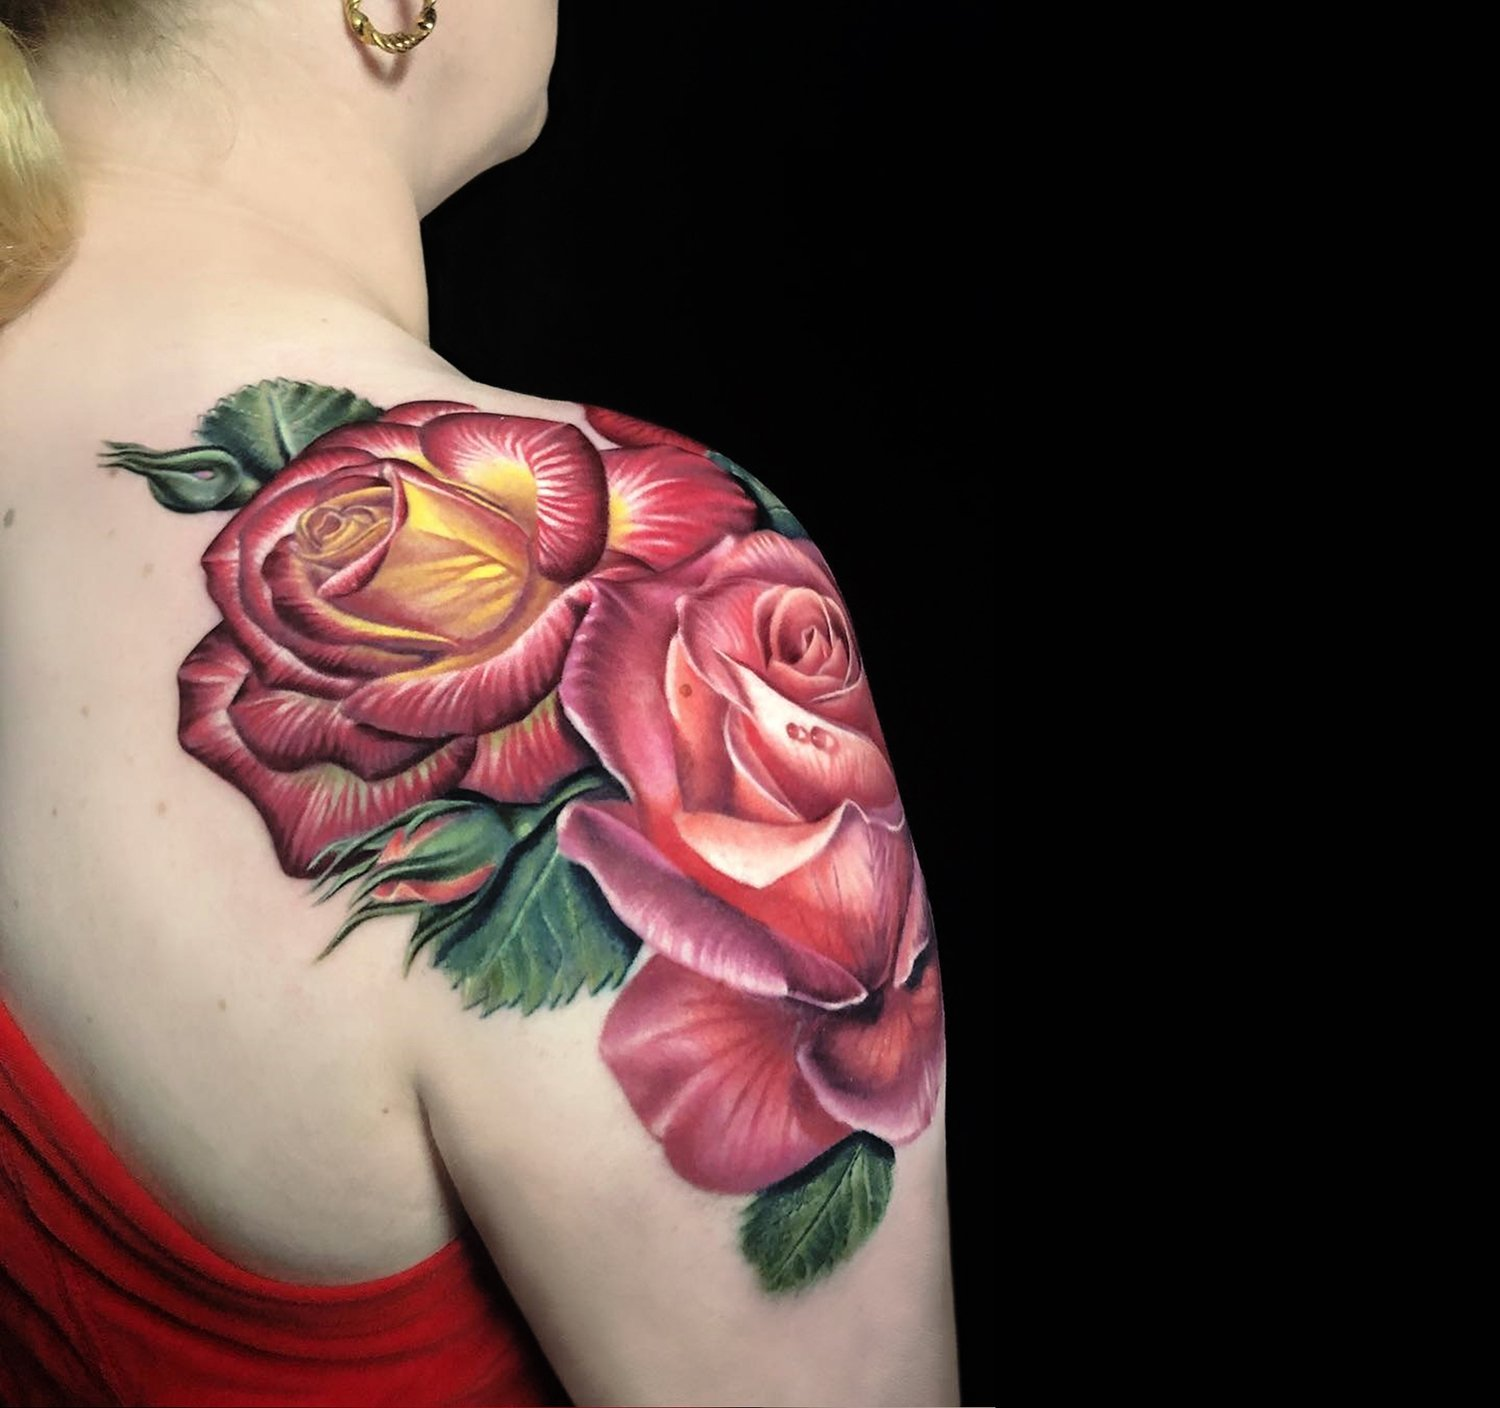 rose tattoo on shoulder by megan massacre